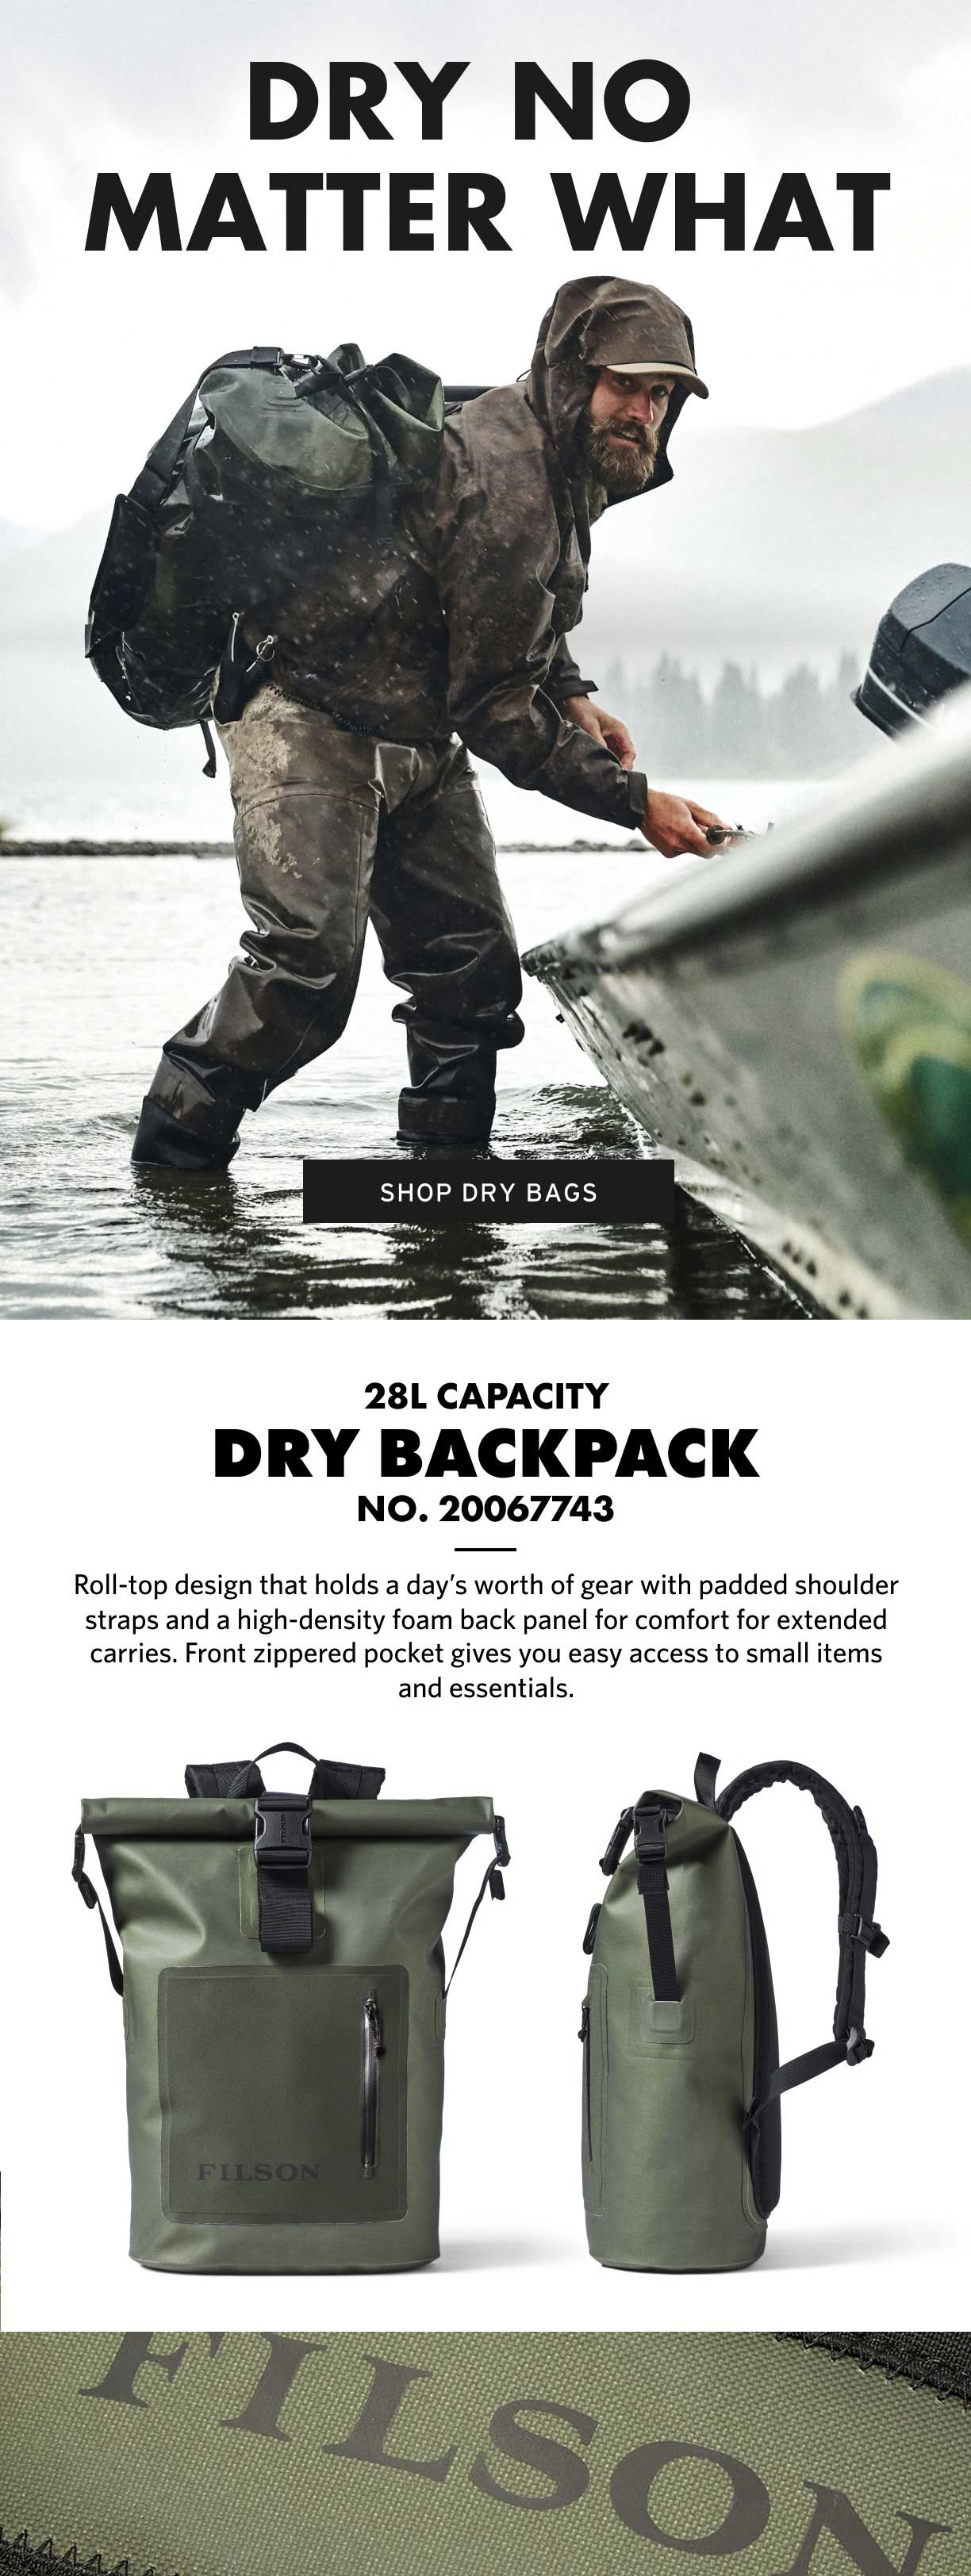 Filson Dry Backpack Productinformation